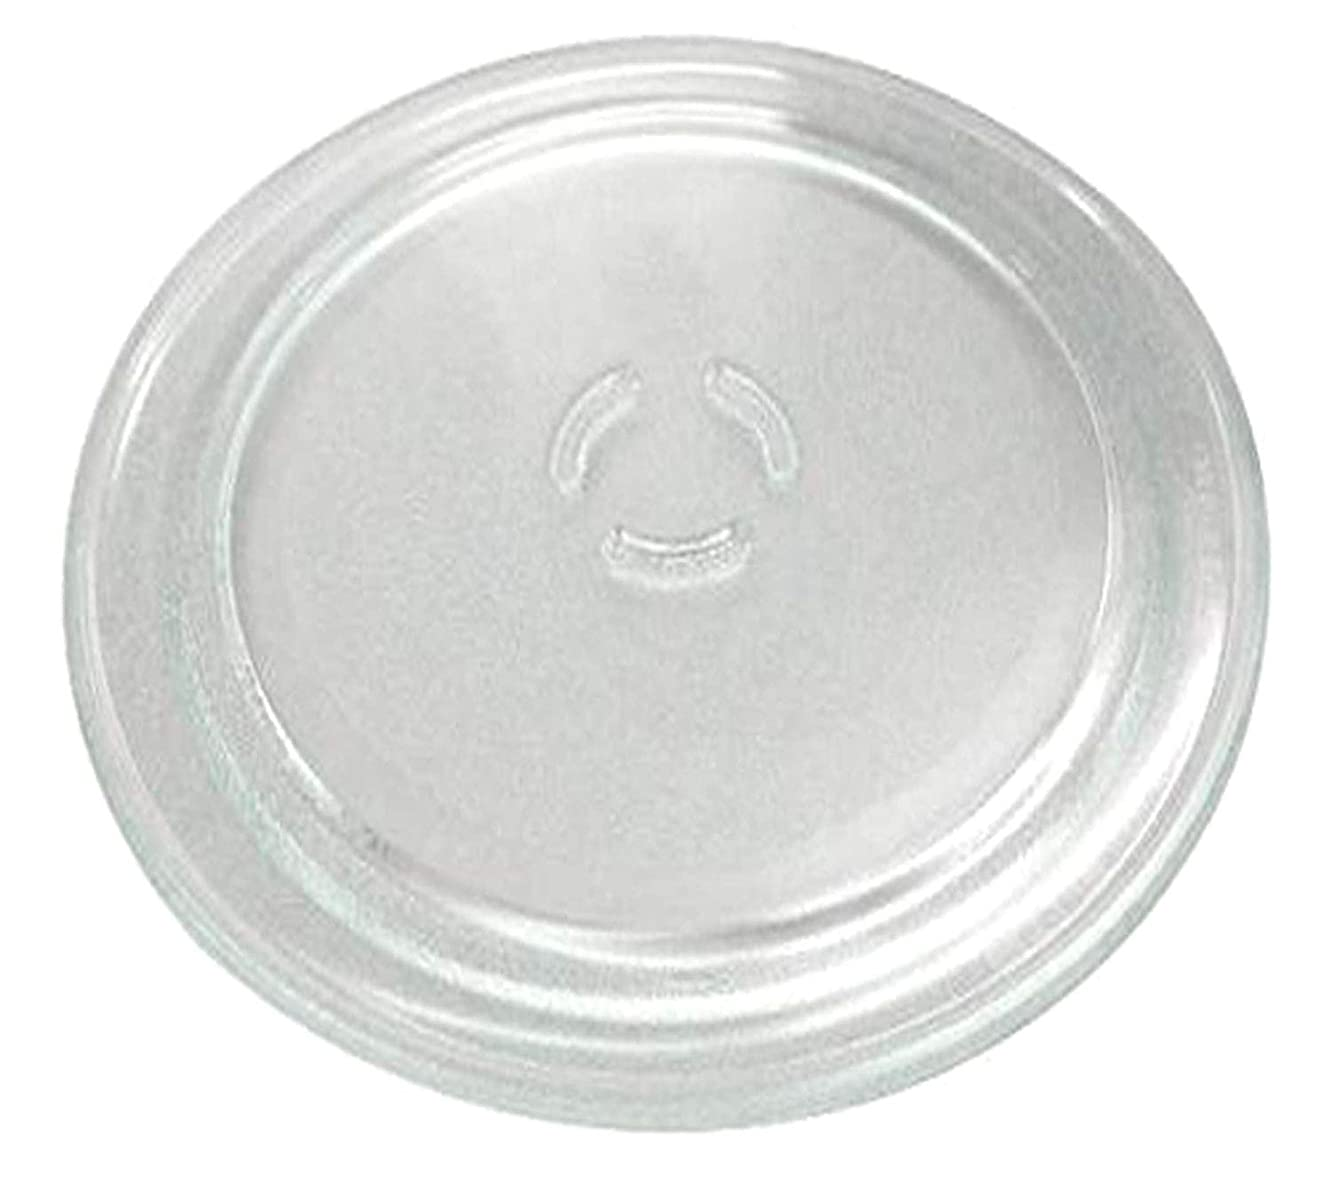 Microwave Glass Plate that works with Maytag MMV1153WB0